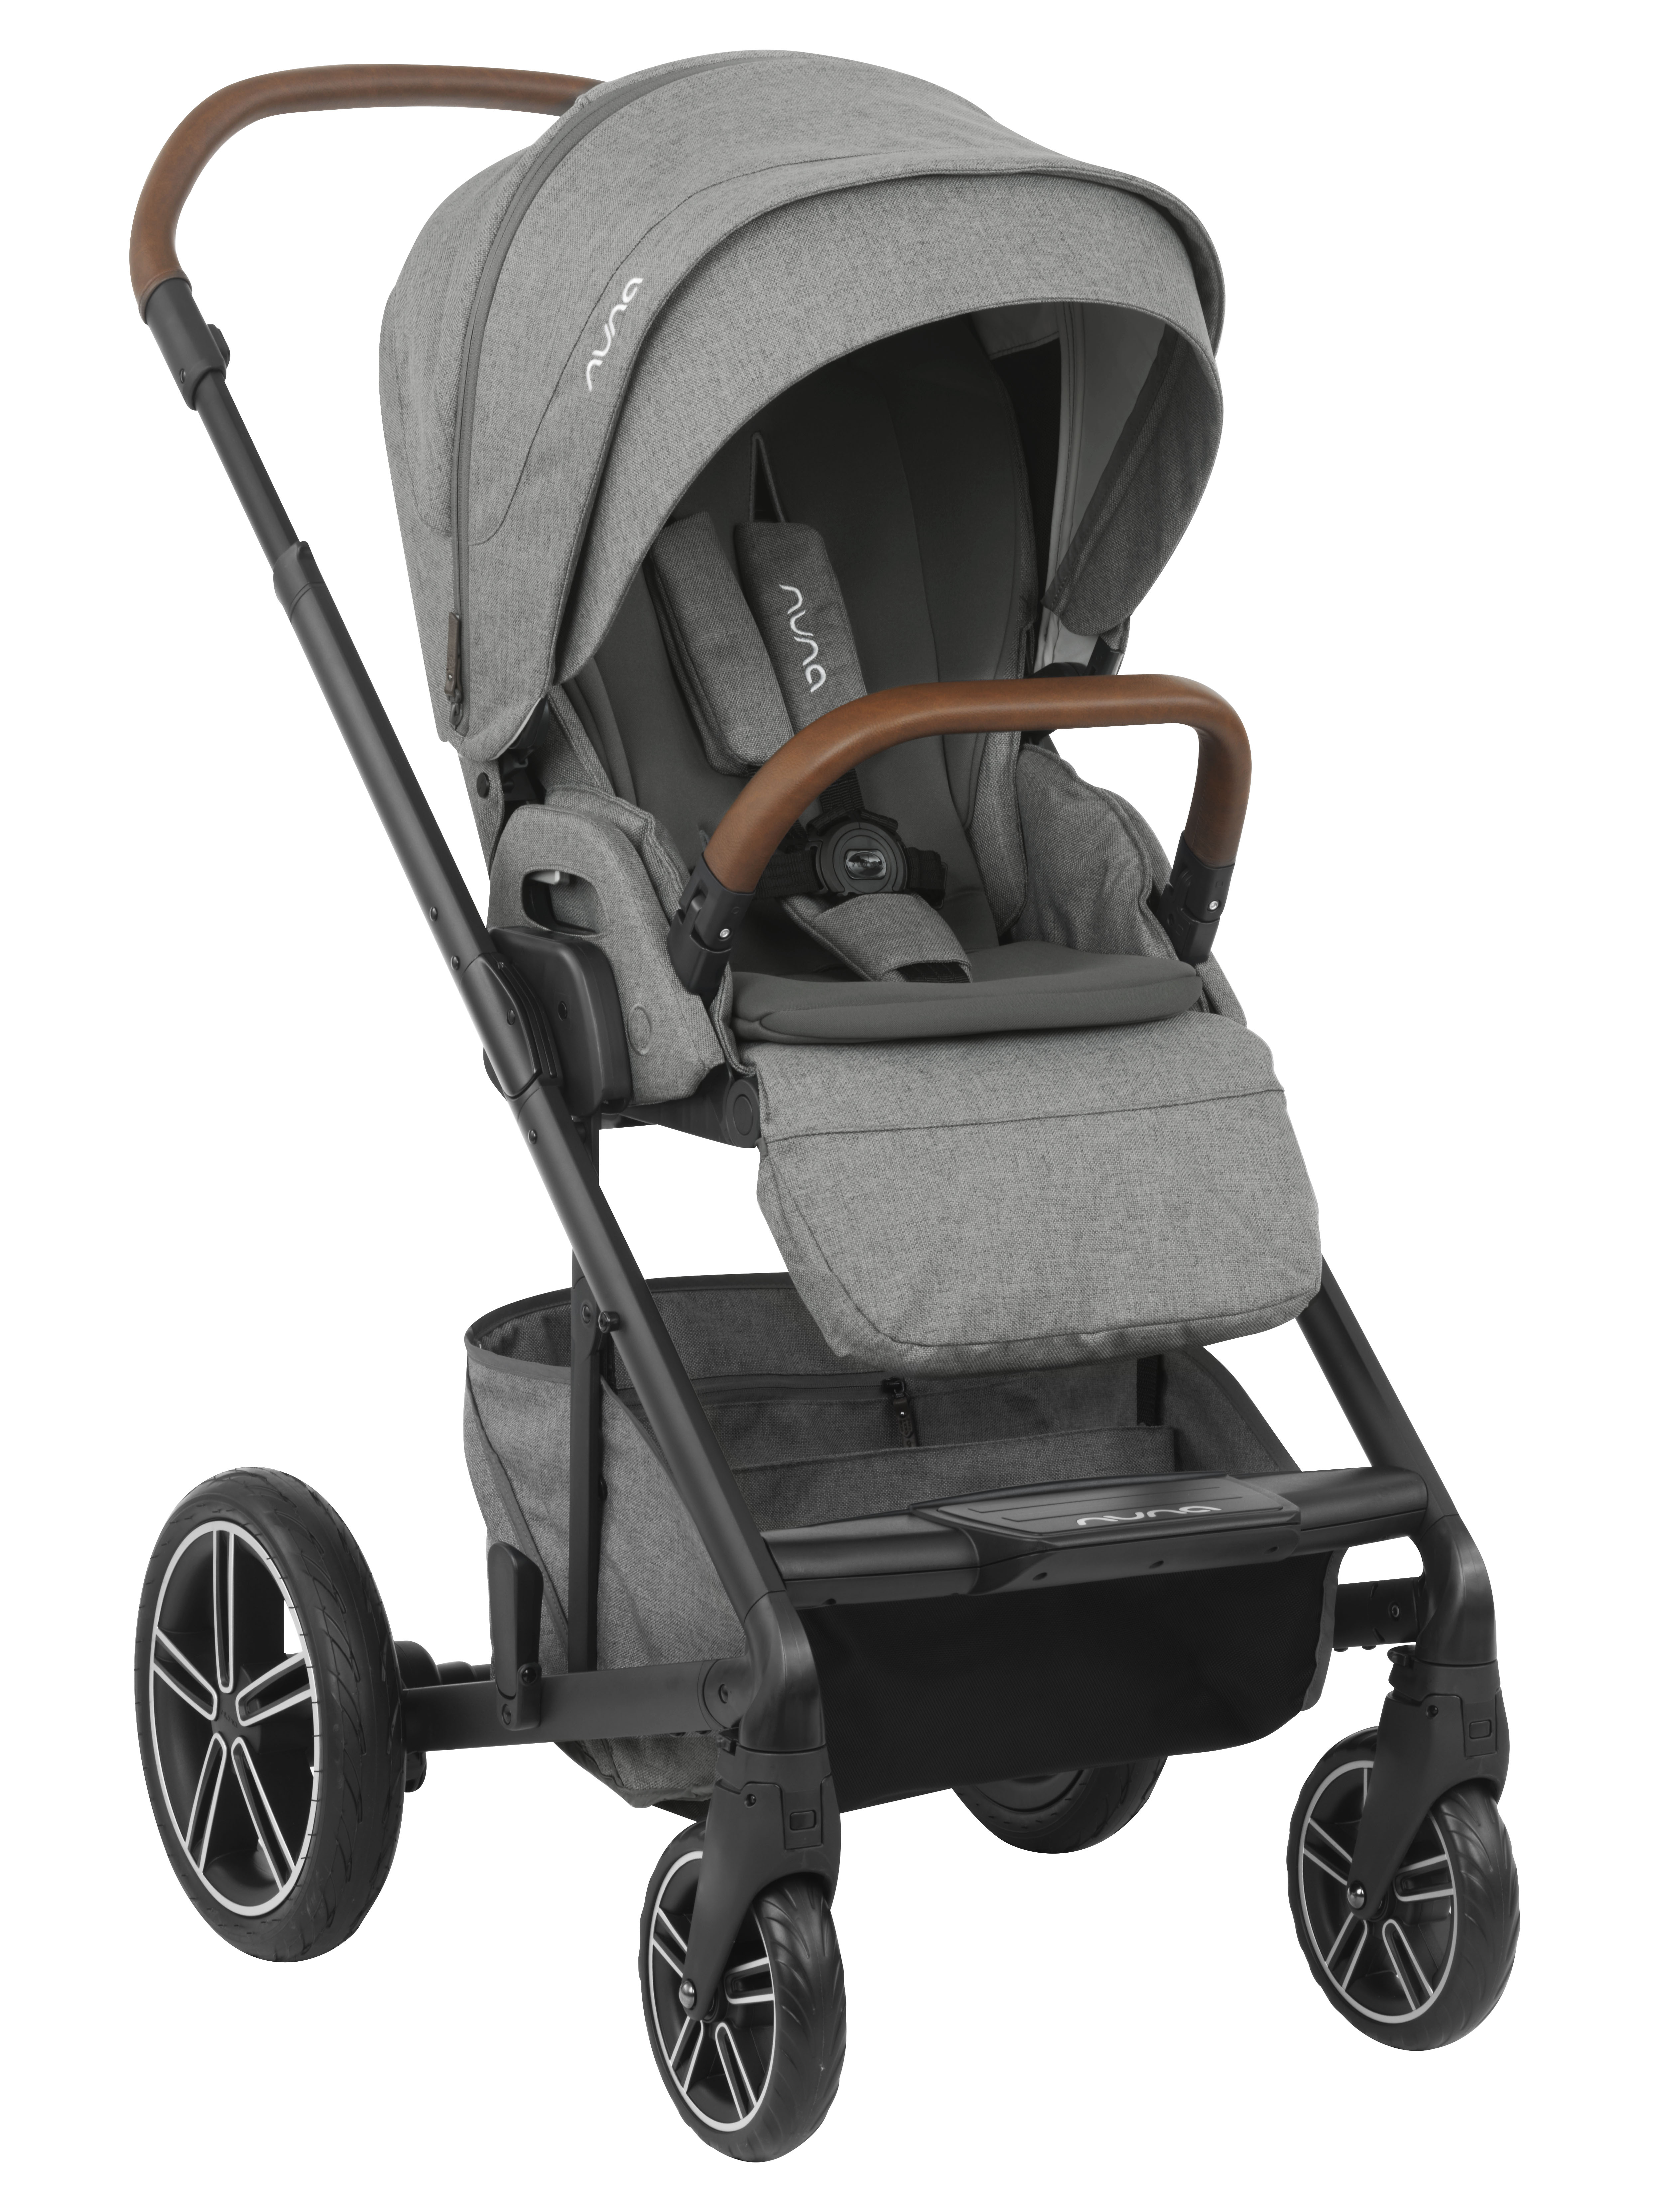 The New 2019 Nuna Mixx In Granite Shop Luxury Strollers